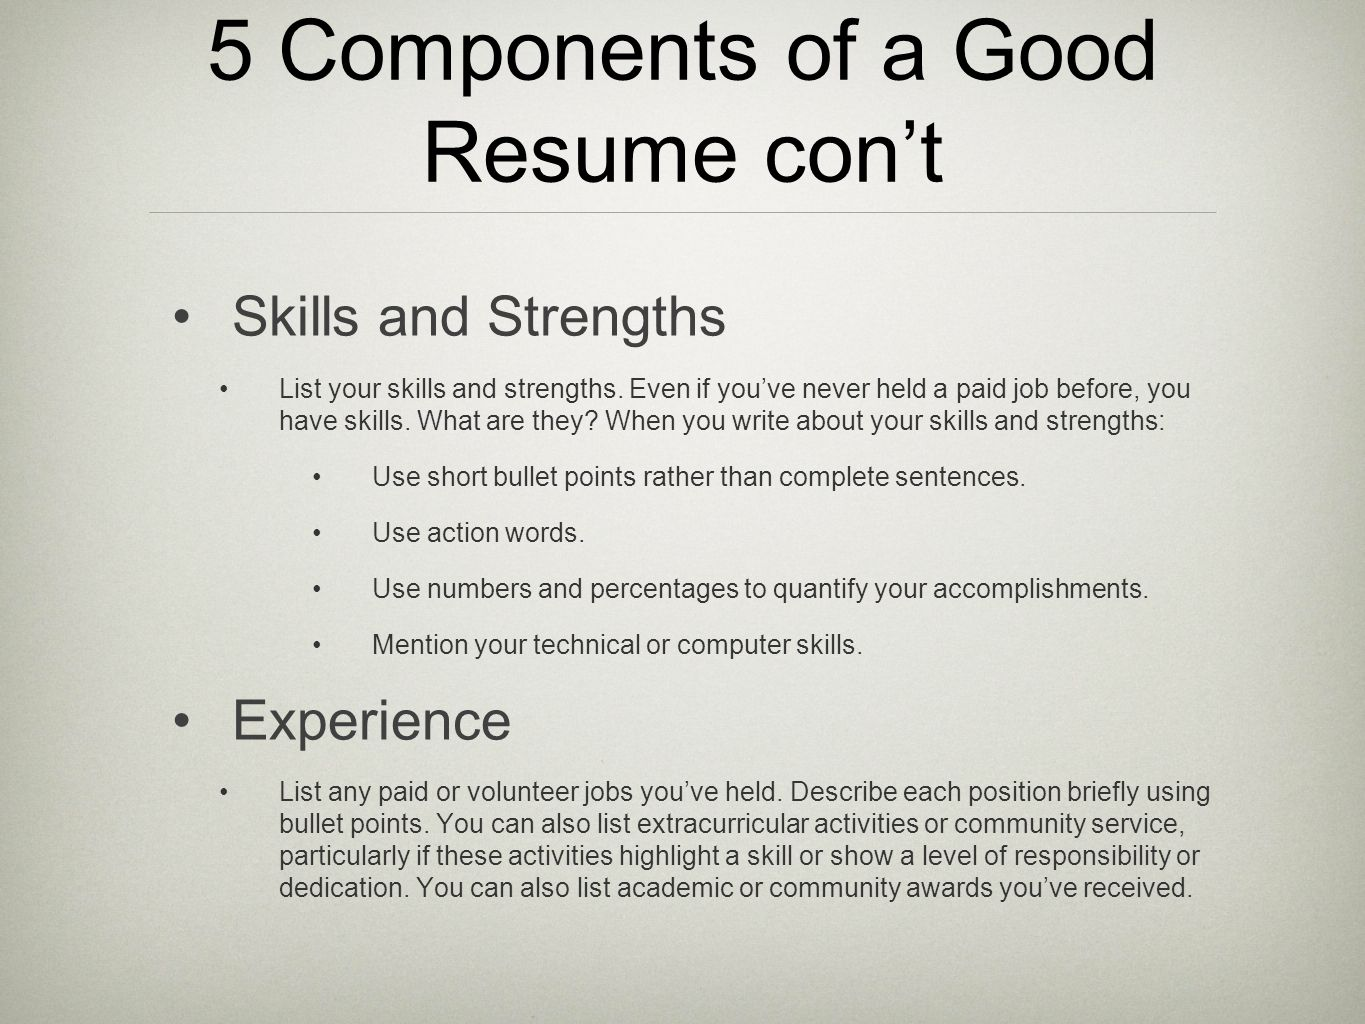 5 components of a good resume cont - Strengths To Be Mentioned In Resume